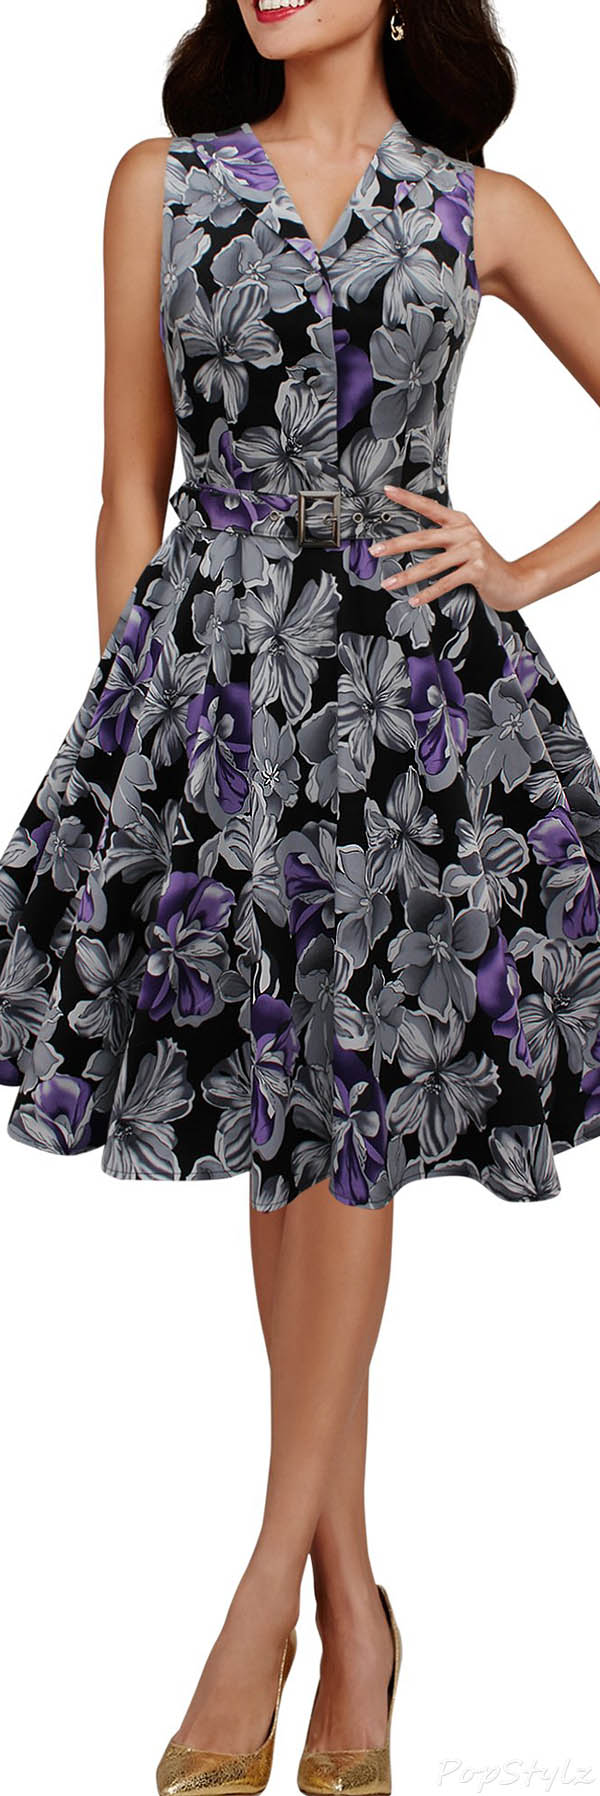 Black Butterfly 'Luna' Retro Liberty 50's Dress